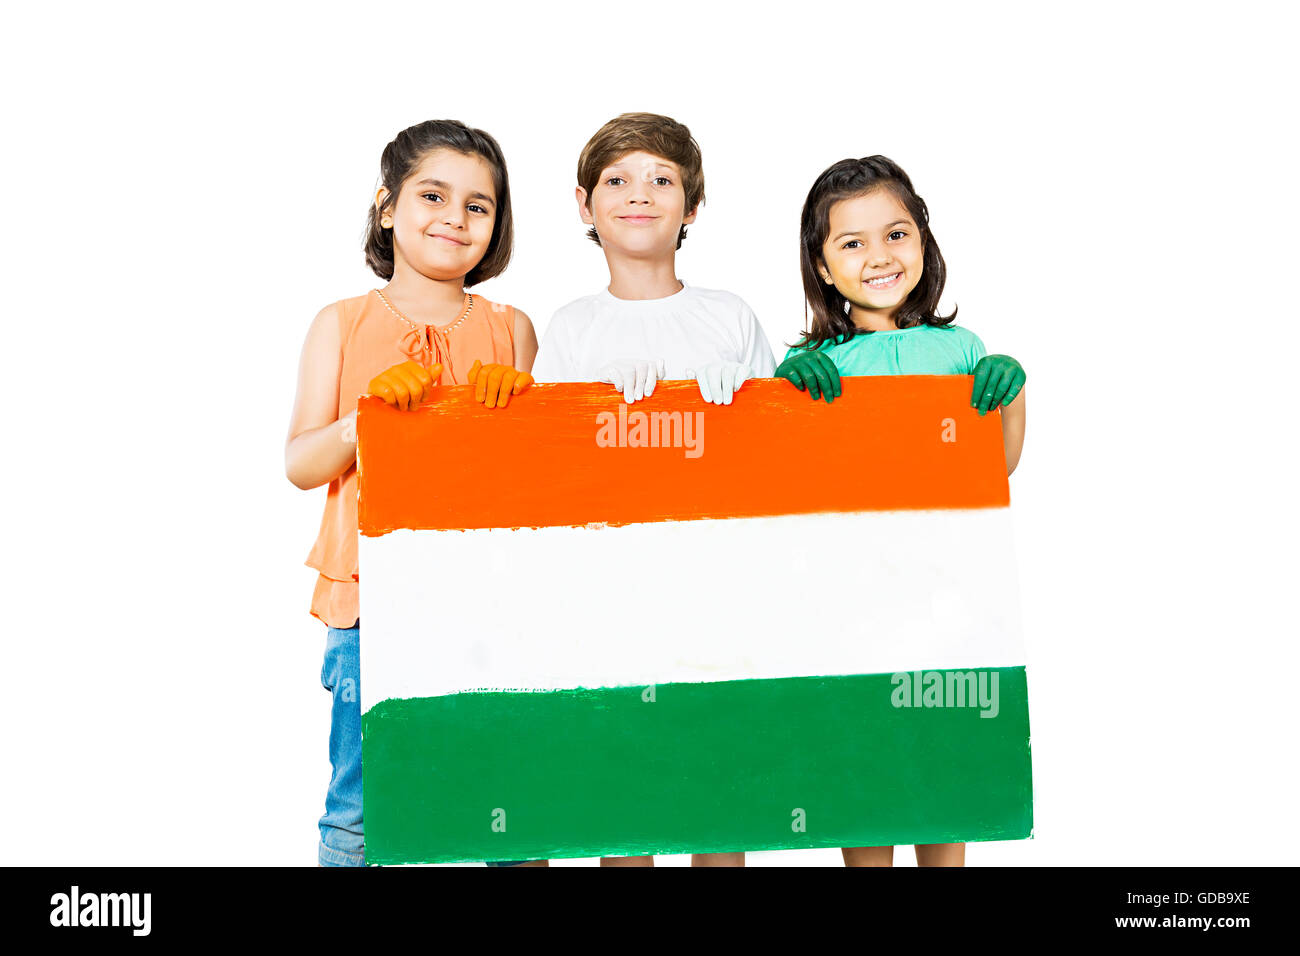 3 indians Kids friends Independence Day flag Message Board showing